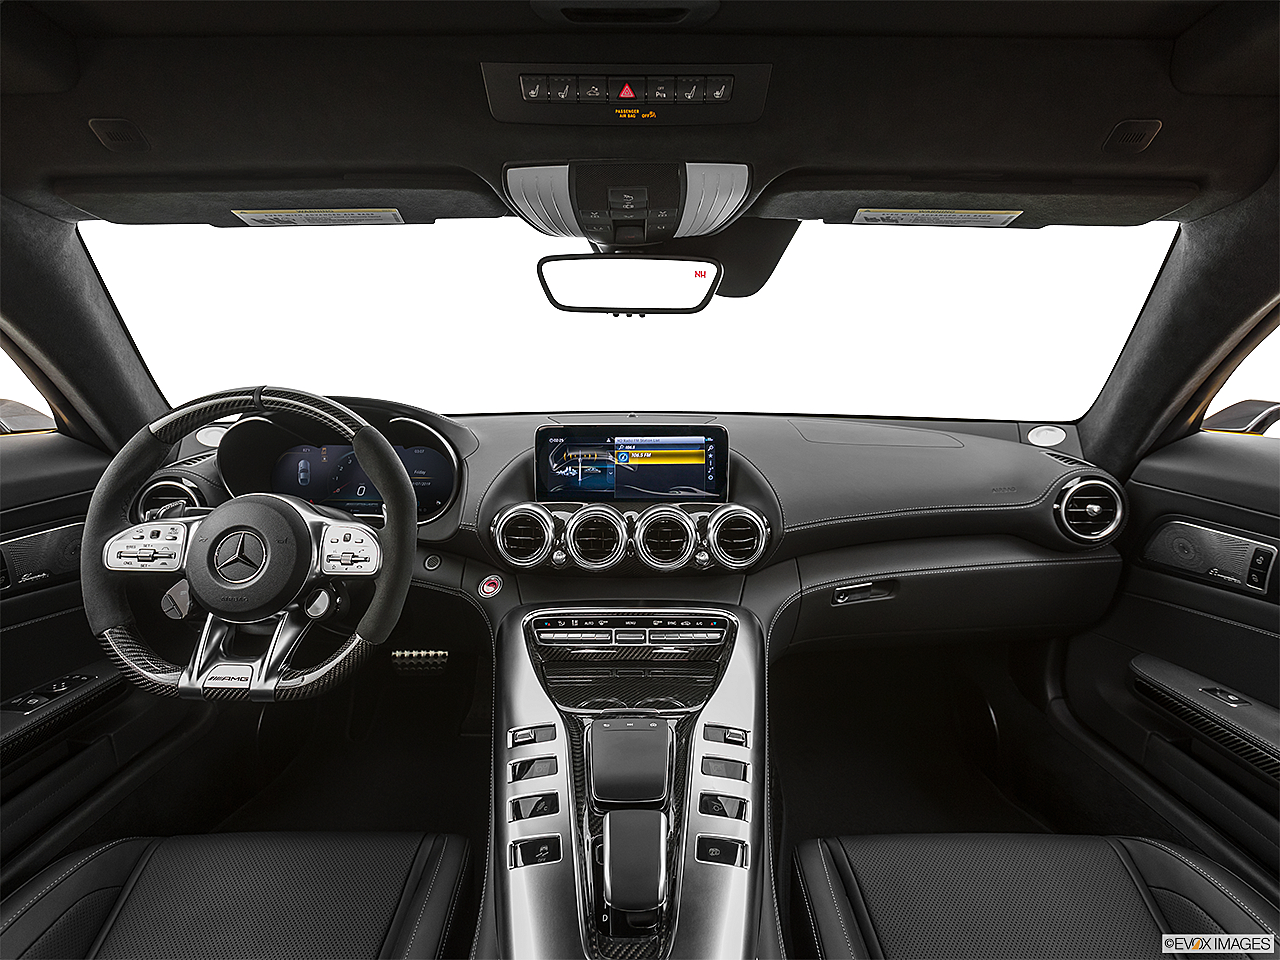 2020 Mercedes-Benz AMG GT C, centered wide dash shot